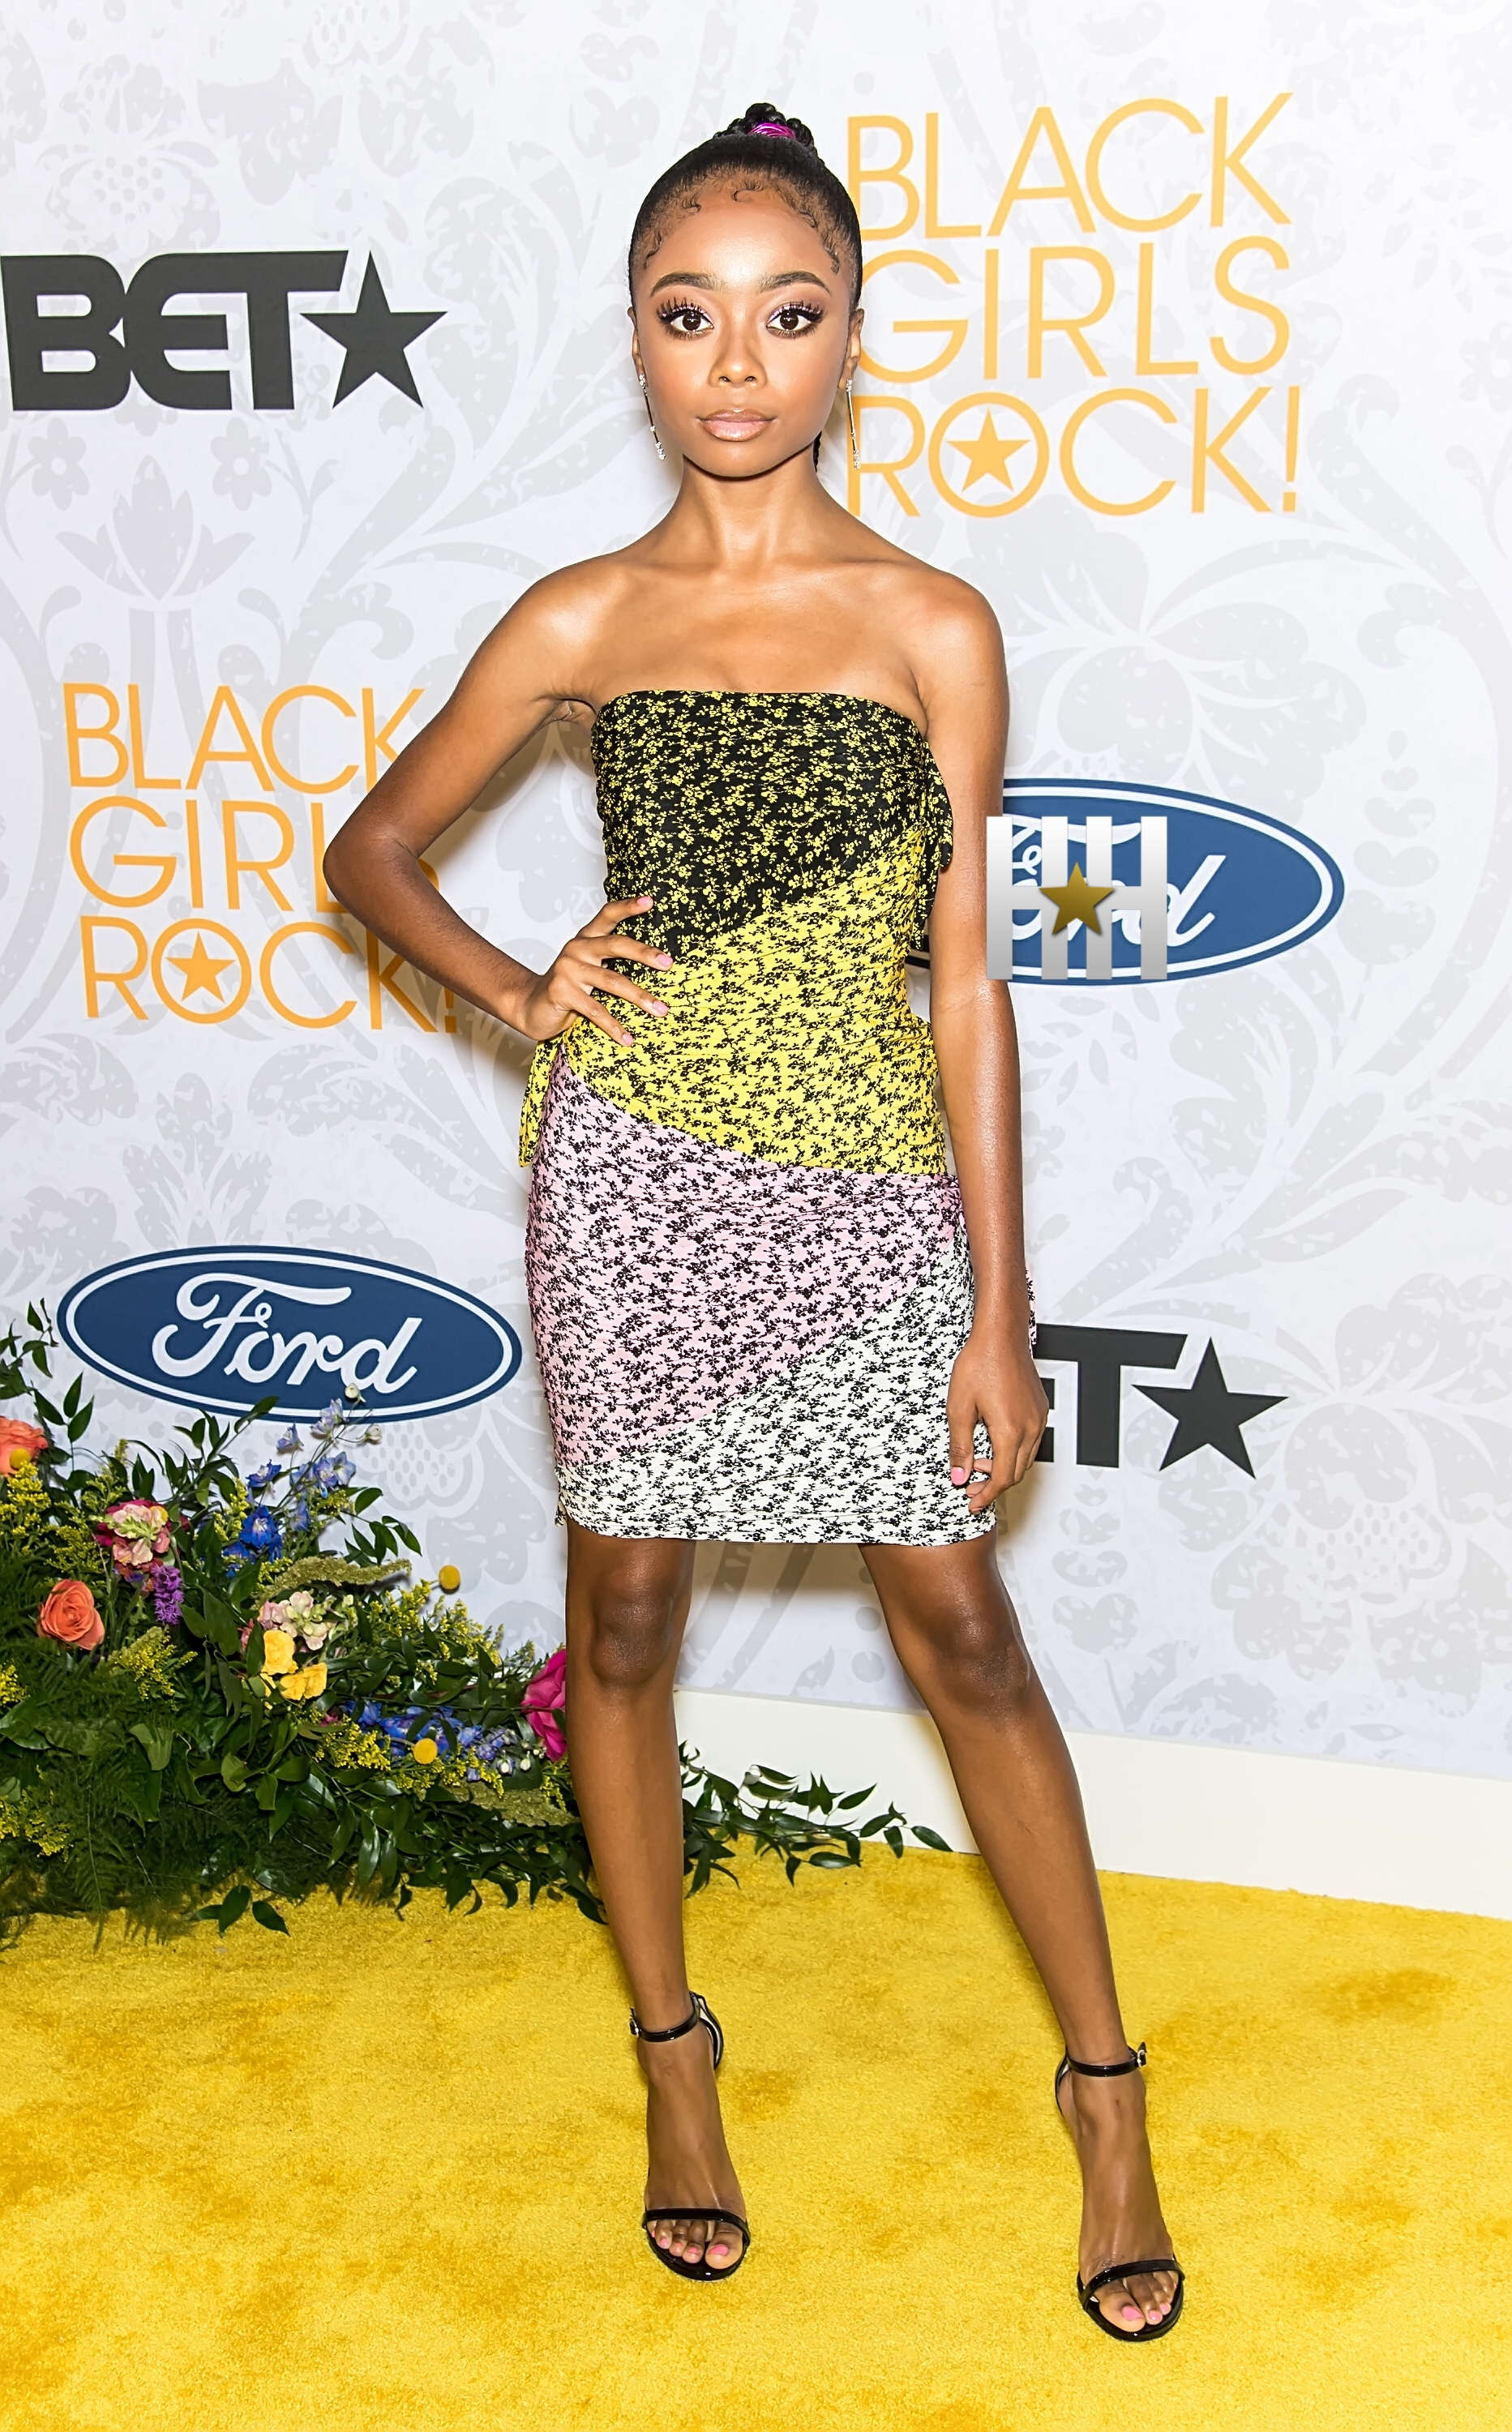 NEWARK, NJ – AUGUST 25:  Actress Skai Jackson attends 2019 Black Girls Rock! at NJ Performing Arts Center on August 25, 2019 in Newark, New Jersey.  (Photo by Gilbert Carrasquillo/Getty Images)